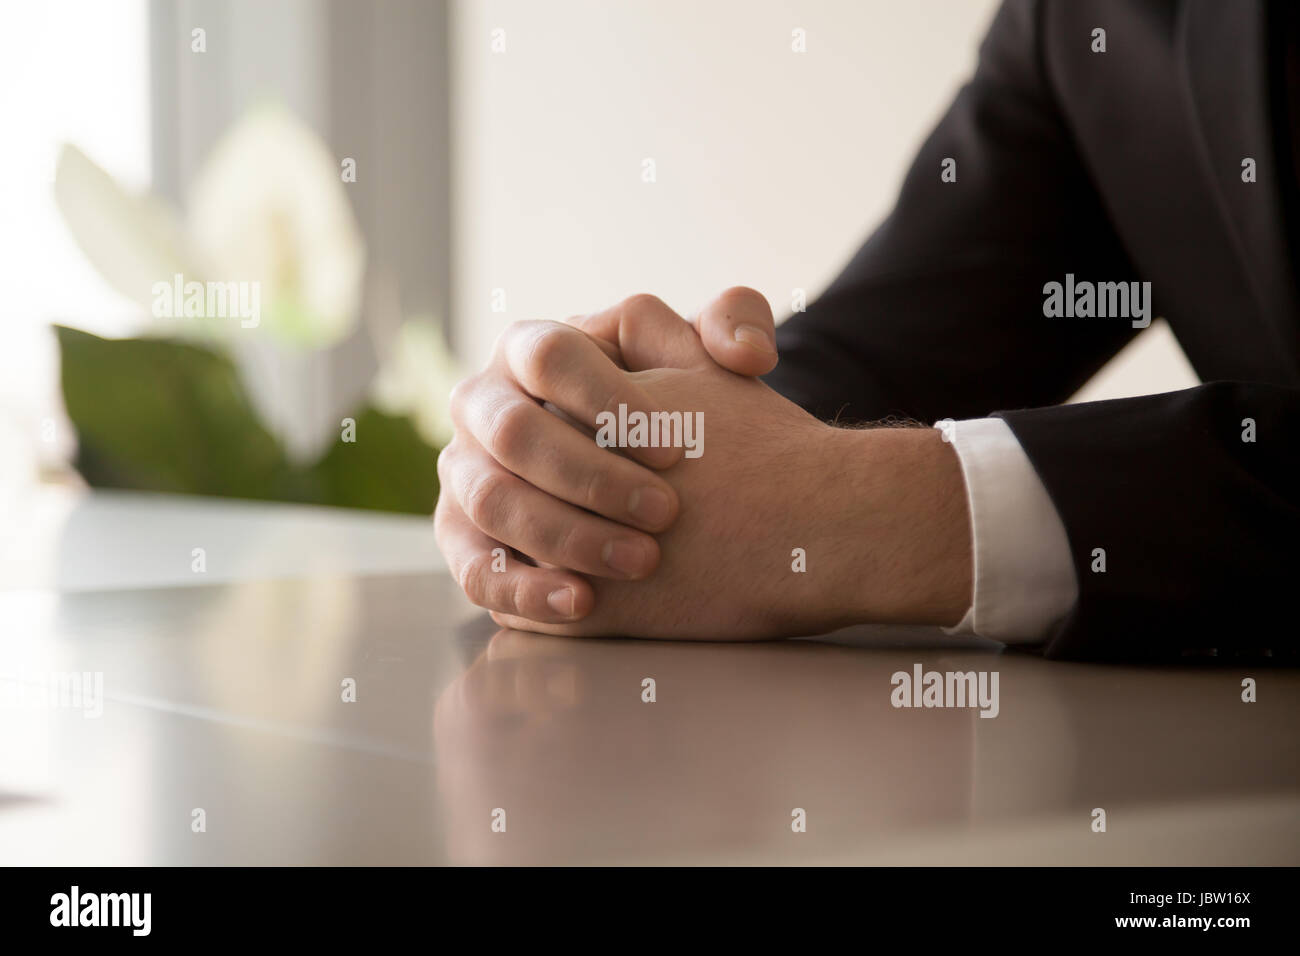 Close up of male clasped hands clenched together on table, businessman preparing for job interview, concentrating - Stock Image